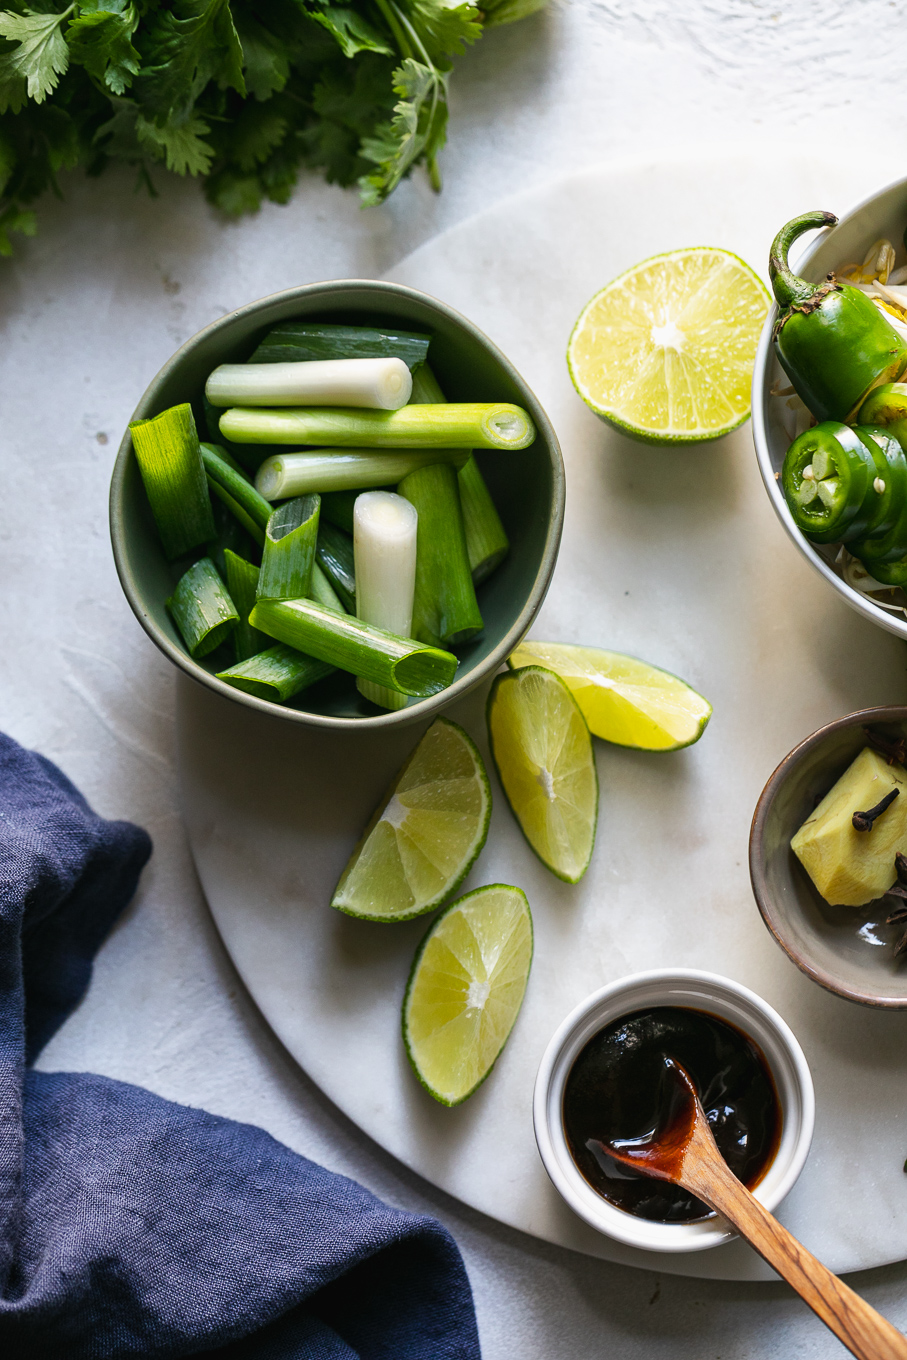 Overhead shot of scallions, lime wedges, ginger, sites, herbs, and hoisin sauce